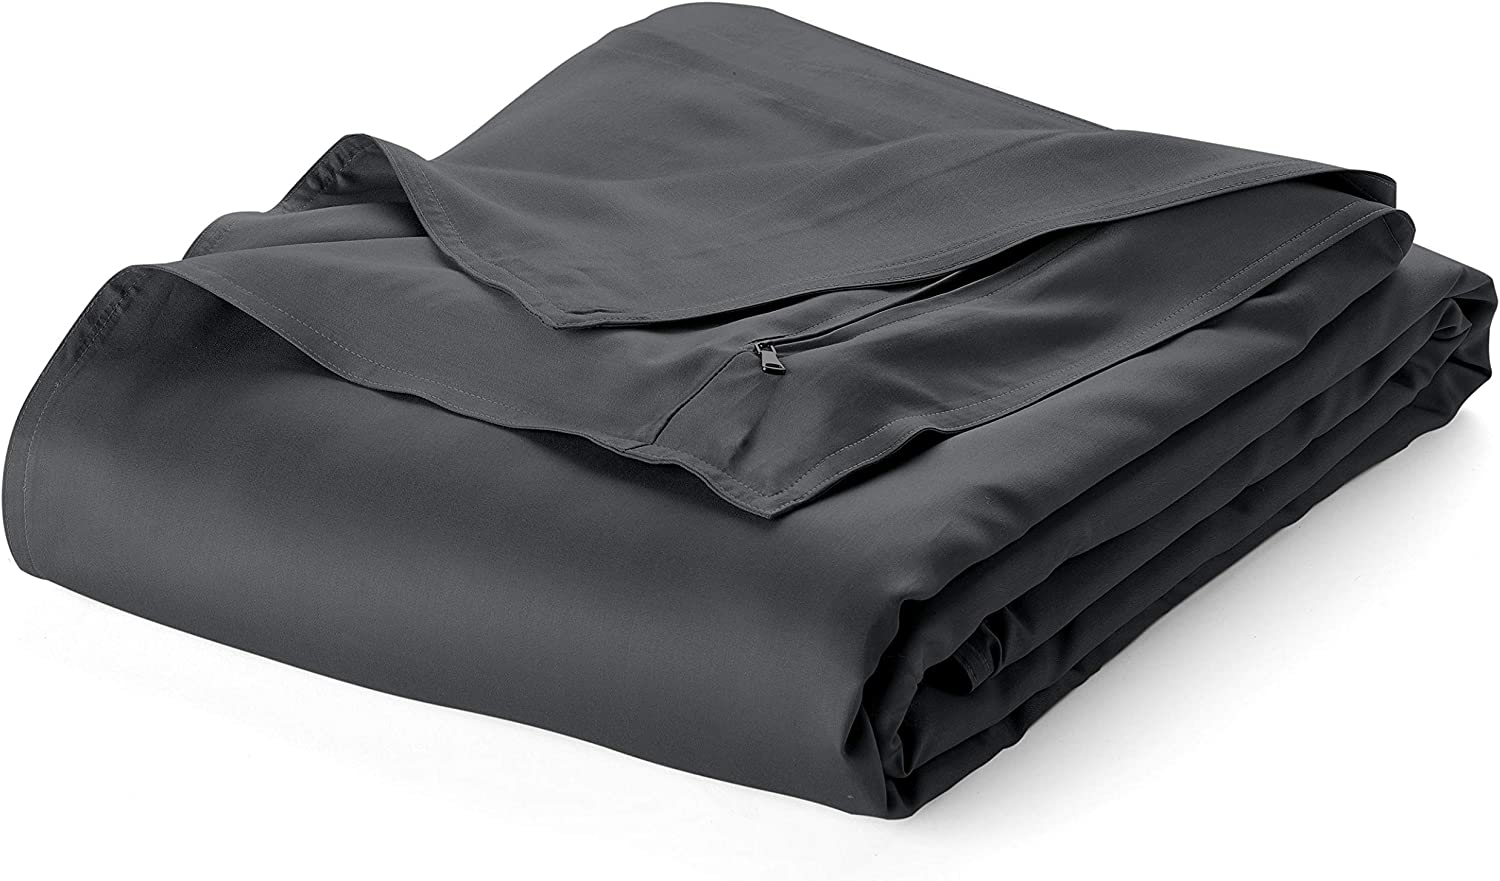 Pure Bamboo – Twin Weighted Blanket Cover 48x72 – 100% Organic Bamboo Viscose Blanket Duvet Cover with 8 Snaps, Hidden Zipper, Machine-Washable, Lightweight, Breathable (48x72, Charcoal)